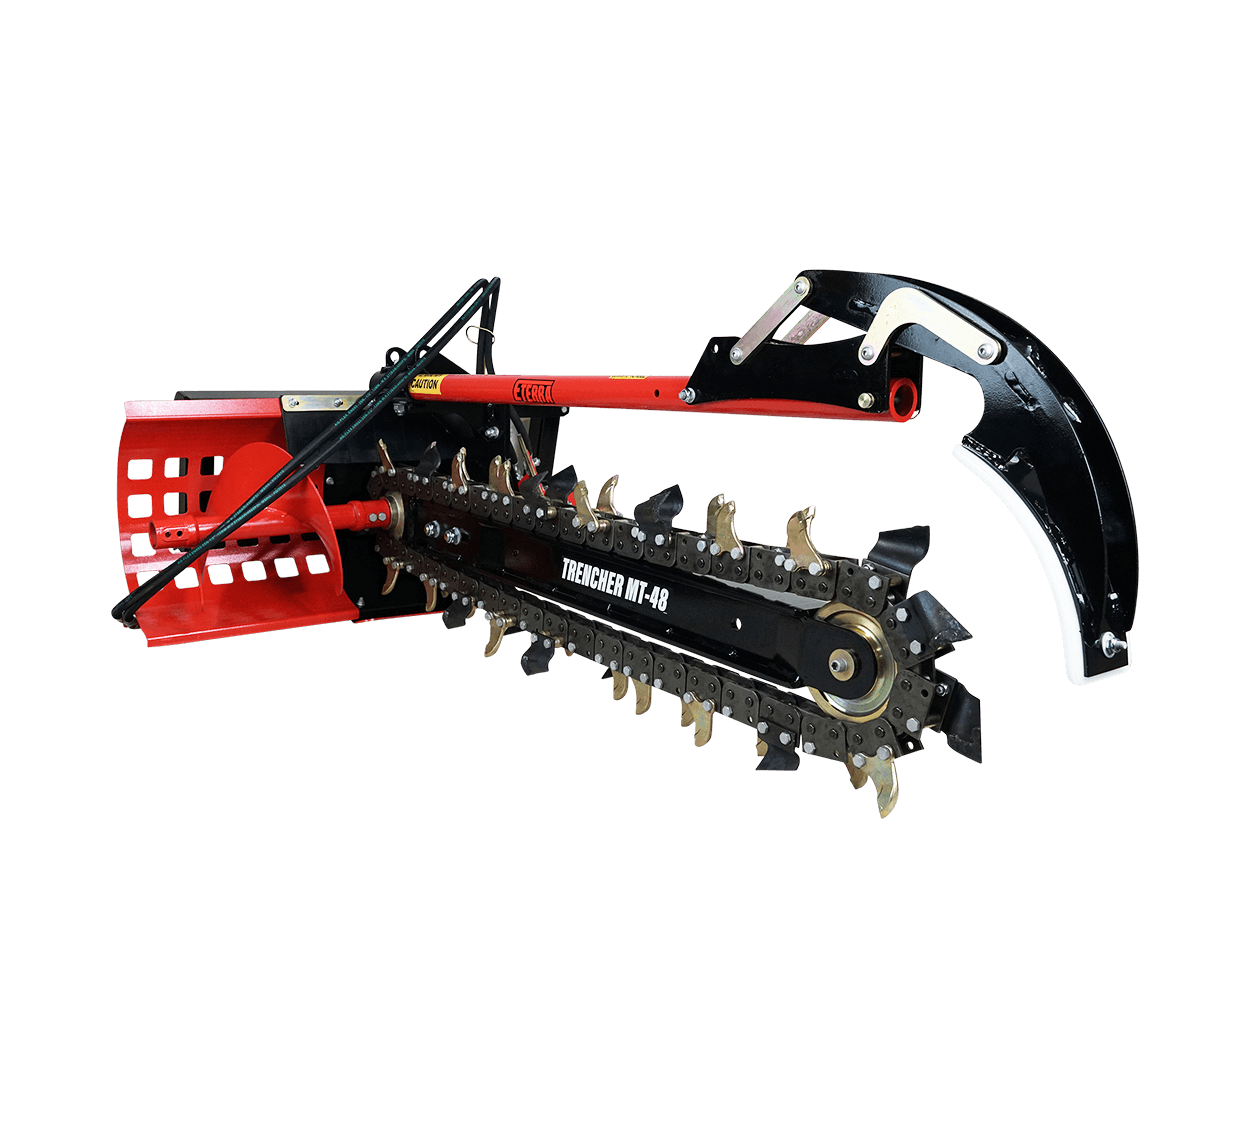 Skid steer 4 ft. trencher attachment with crumber bar.